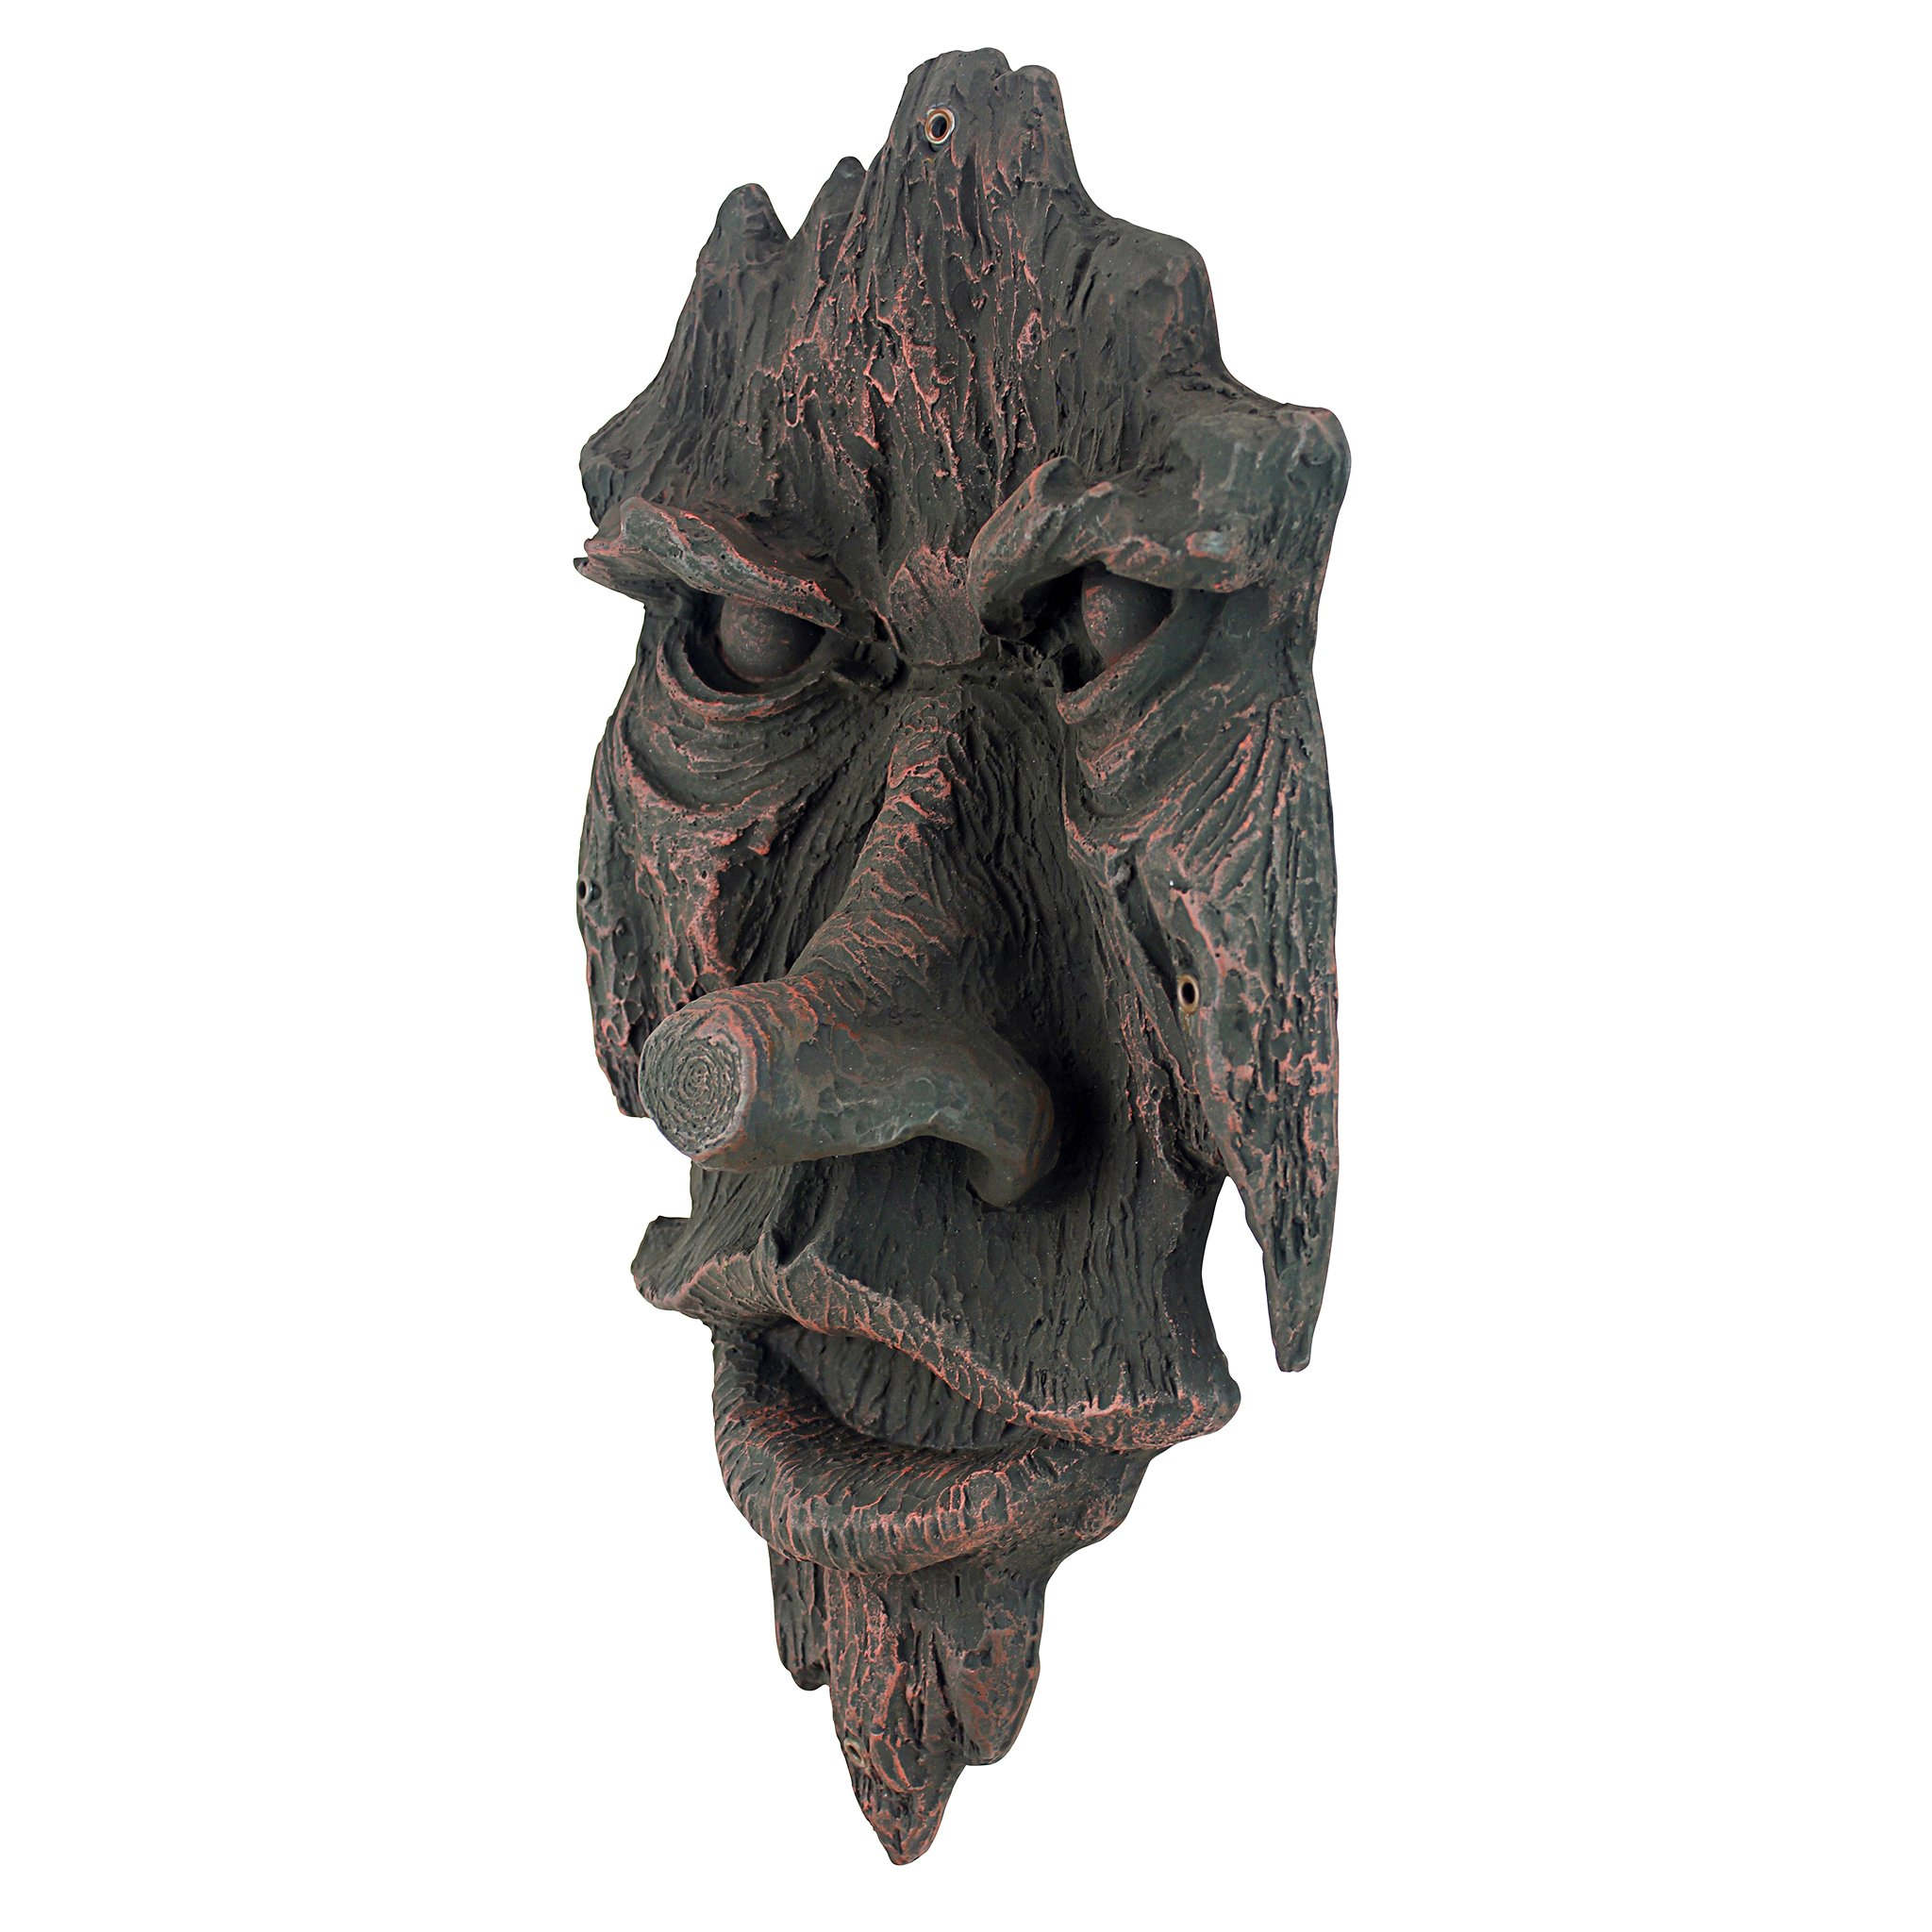 The Spirit of Nottingham Woods: Greenman Tree Sculpture by Design Toscano